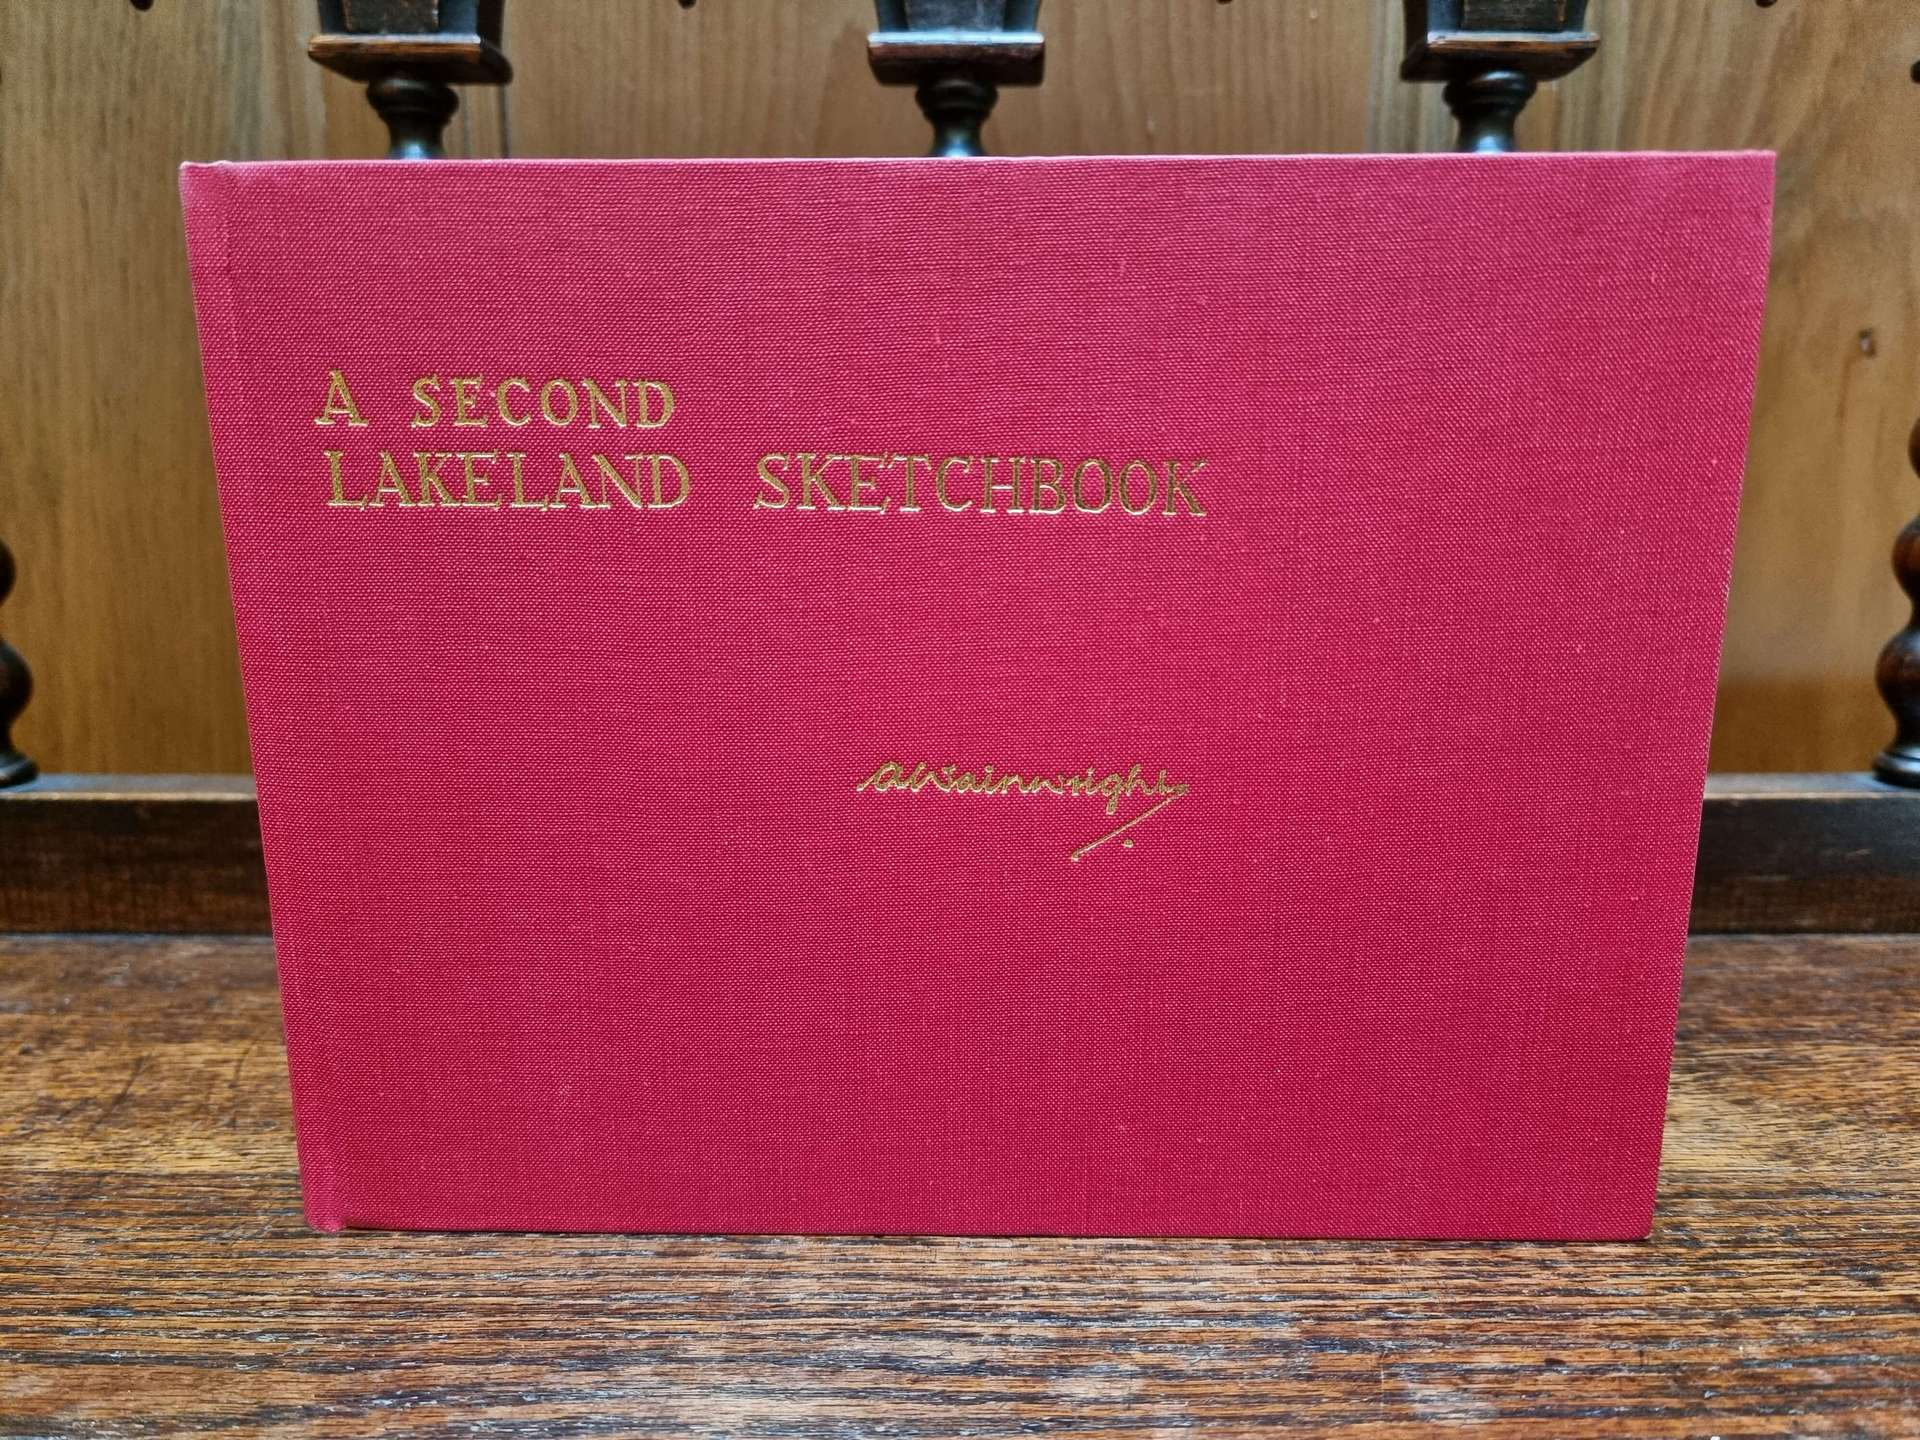 A Second Lakeland Sketchbook First Edition without the Dust Jacket